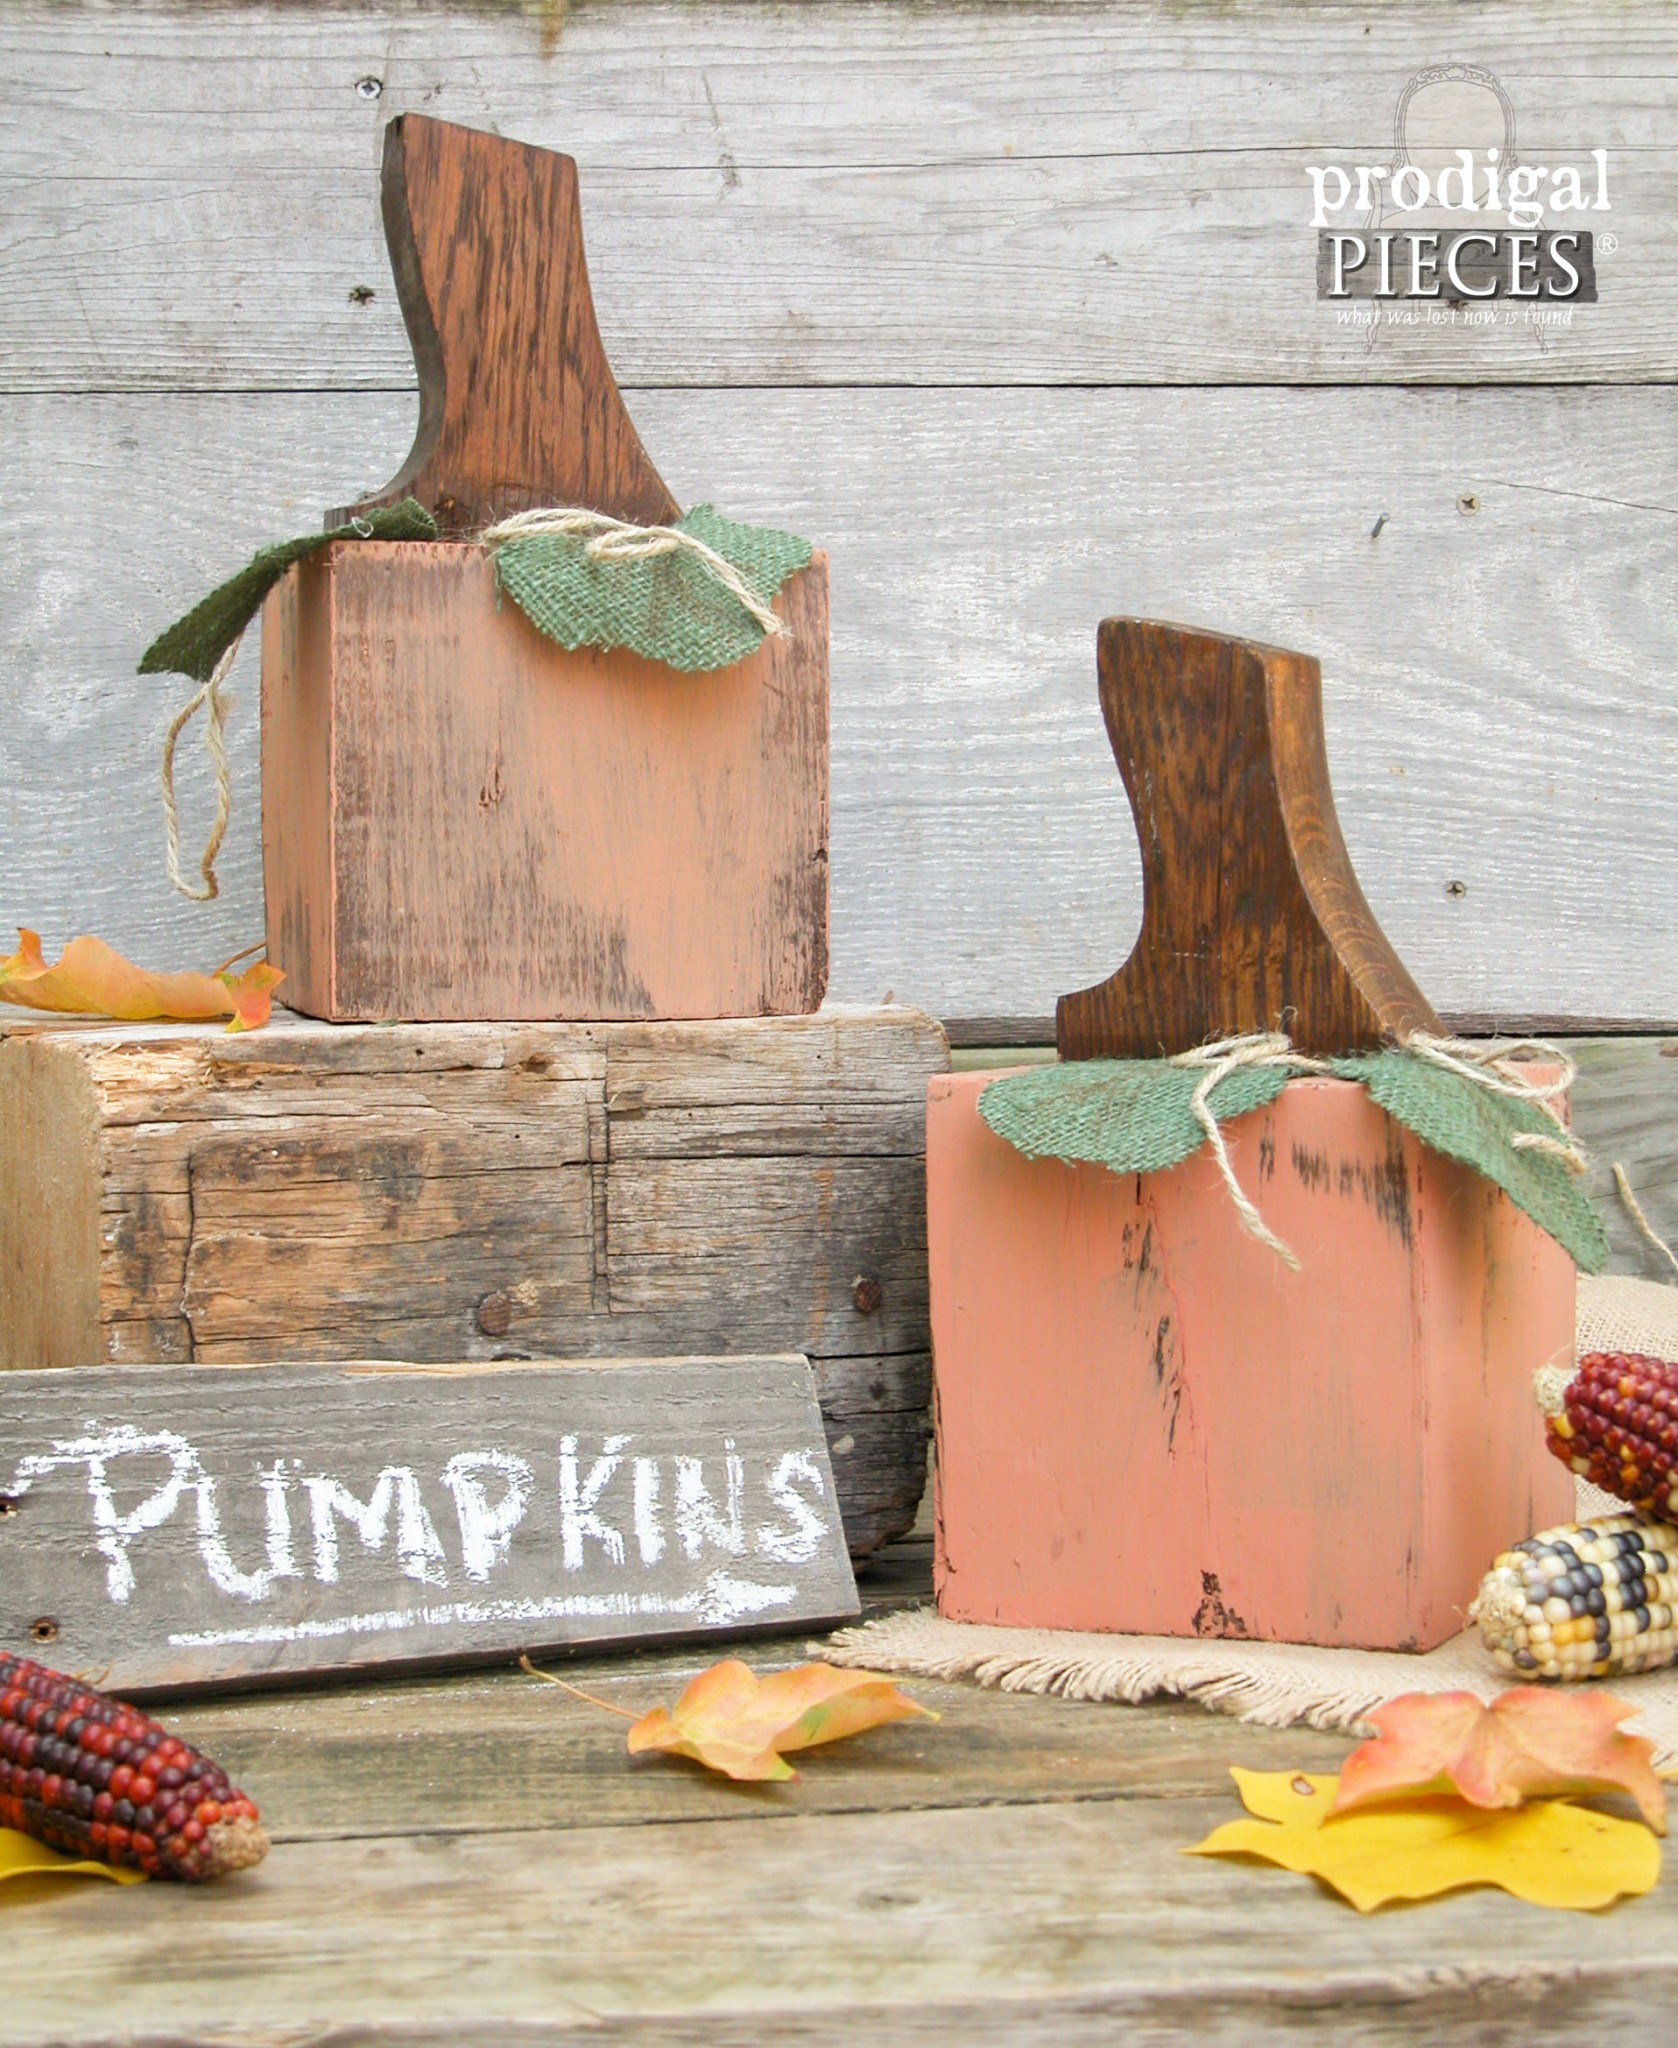 Repurposed Wooden Pumpkins by Prodigal Pieces | www.prodigalpieces.com